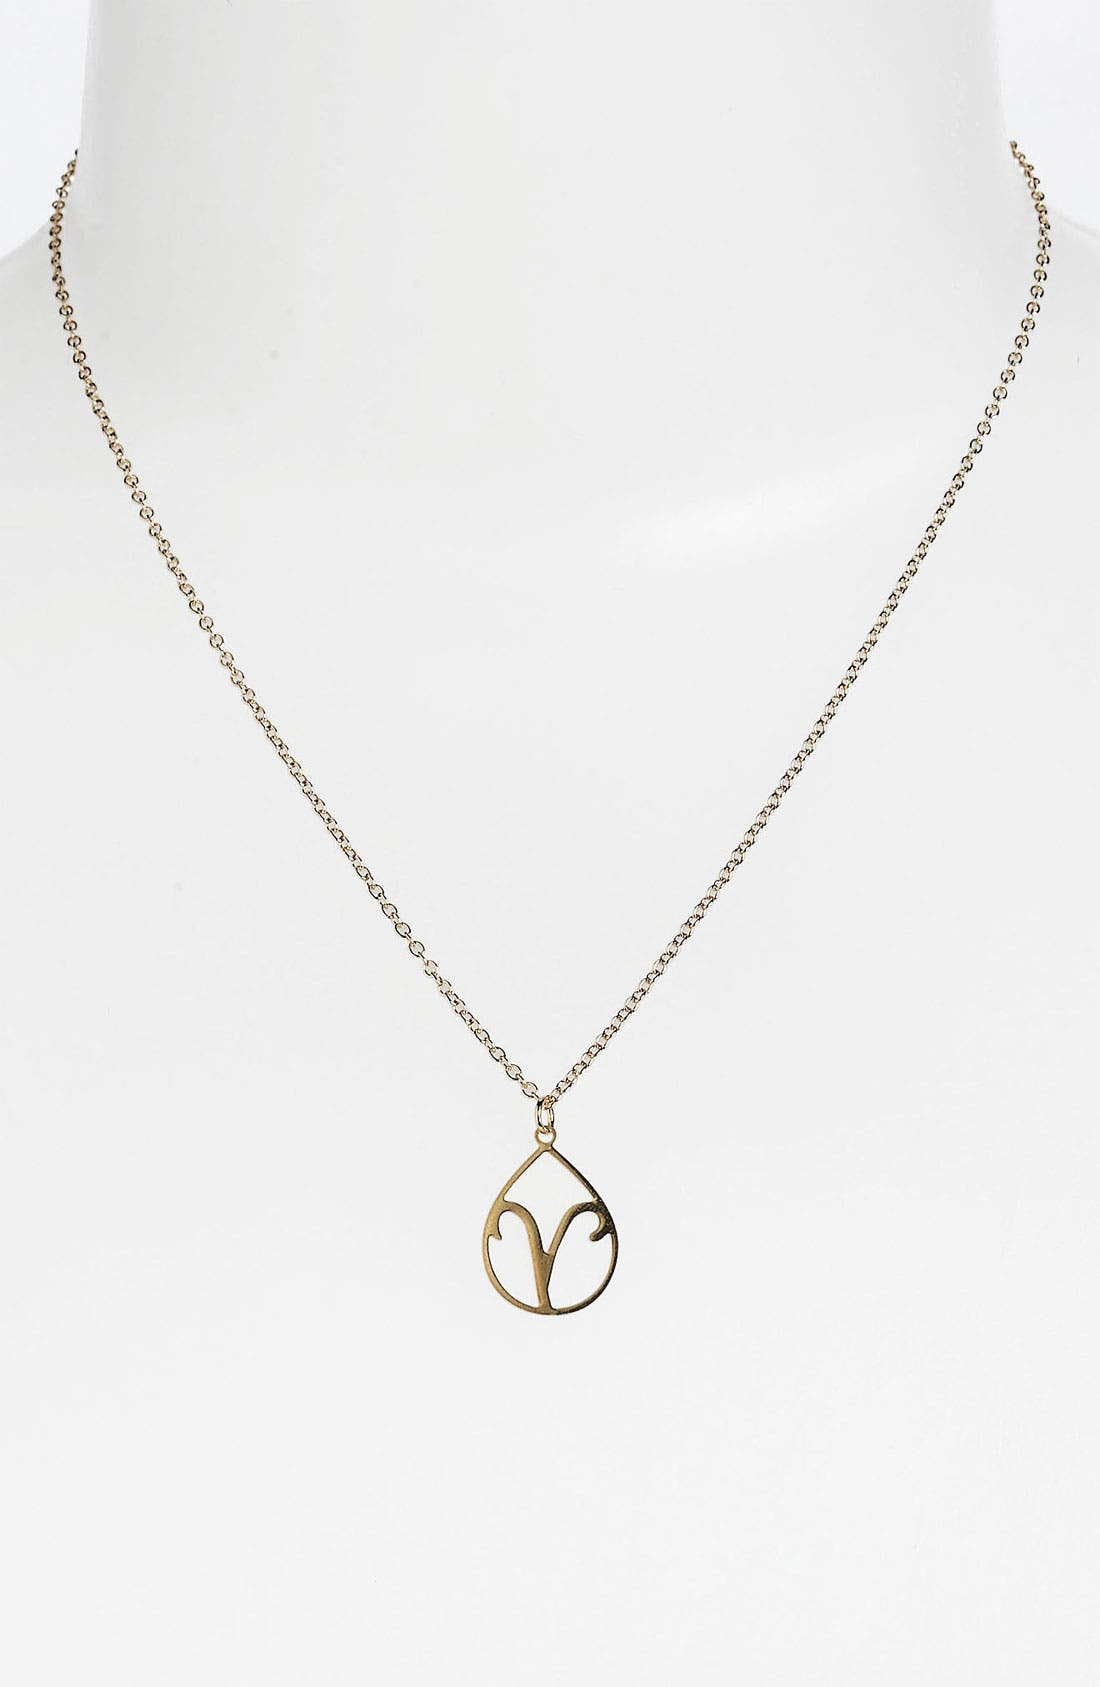 Main Image - Kris Nations 'Aries' Necklace